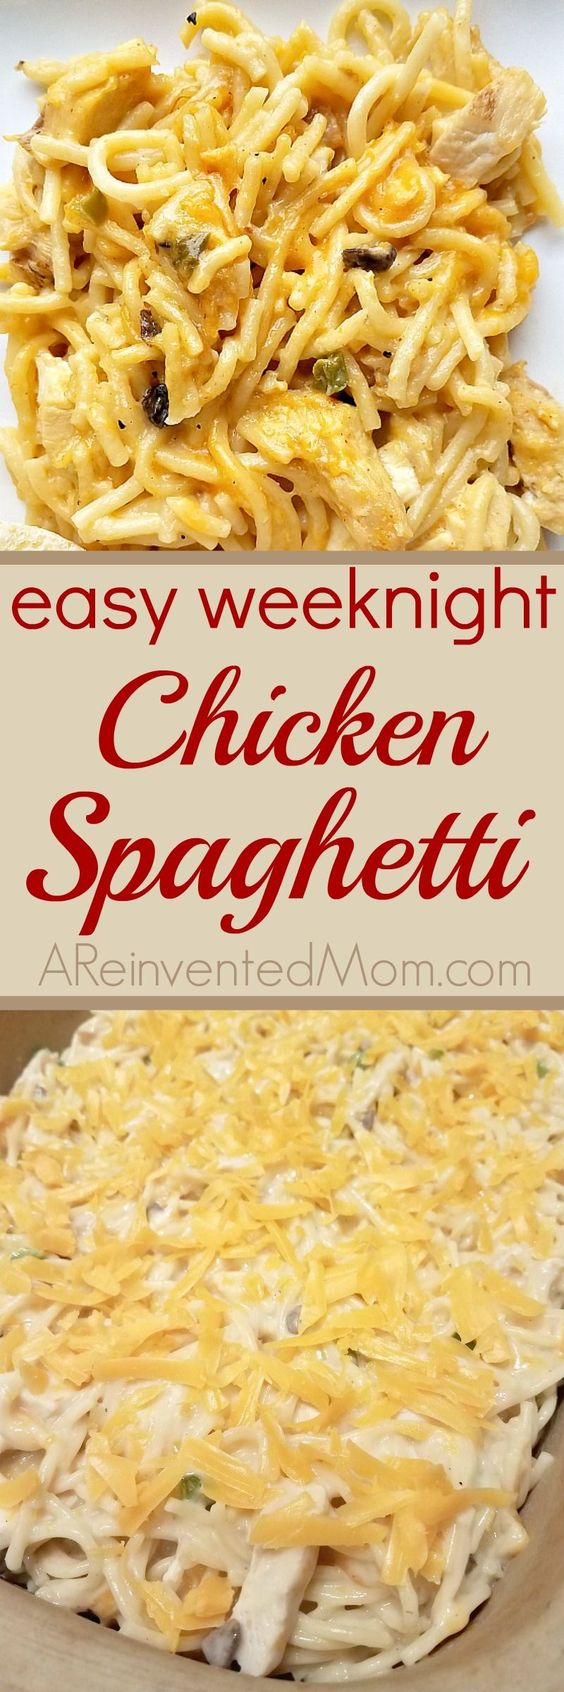 Comfort food simple enough for a week day Easy Weeknight Chicken Spaghetti